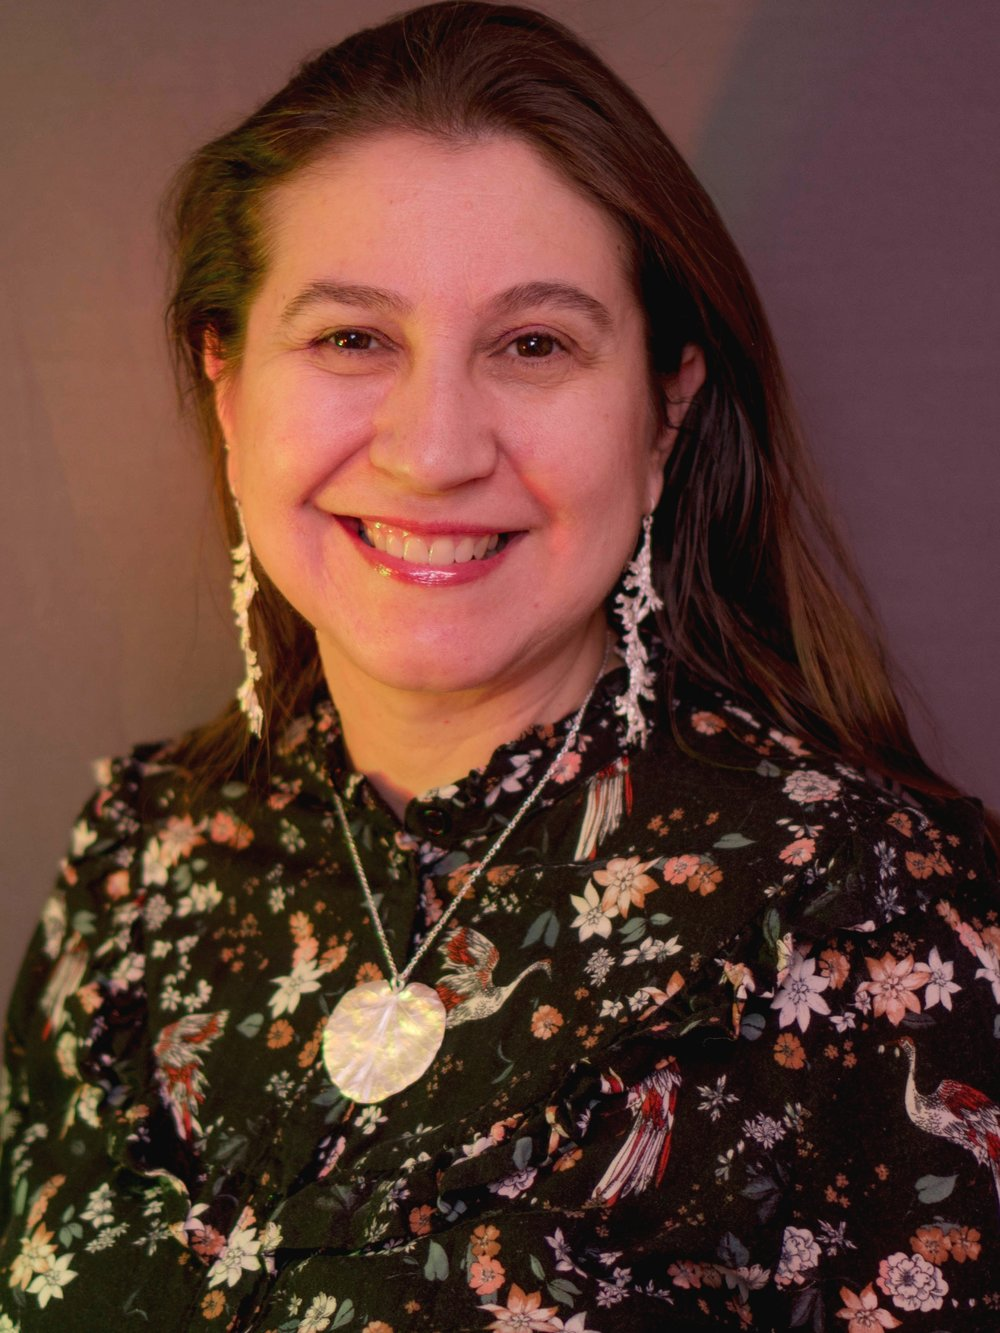 """""""Environment consciousness is built in the human system. My jewelry designs are infused with Mother Nature's beautiful shapes and textures. I give back to Mother Earth by supporting sustainable practices in my jewelry making. My clients tell me that I make gorgeous nature-themed pieces that call to them."""" - Sandrine Valentine"""